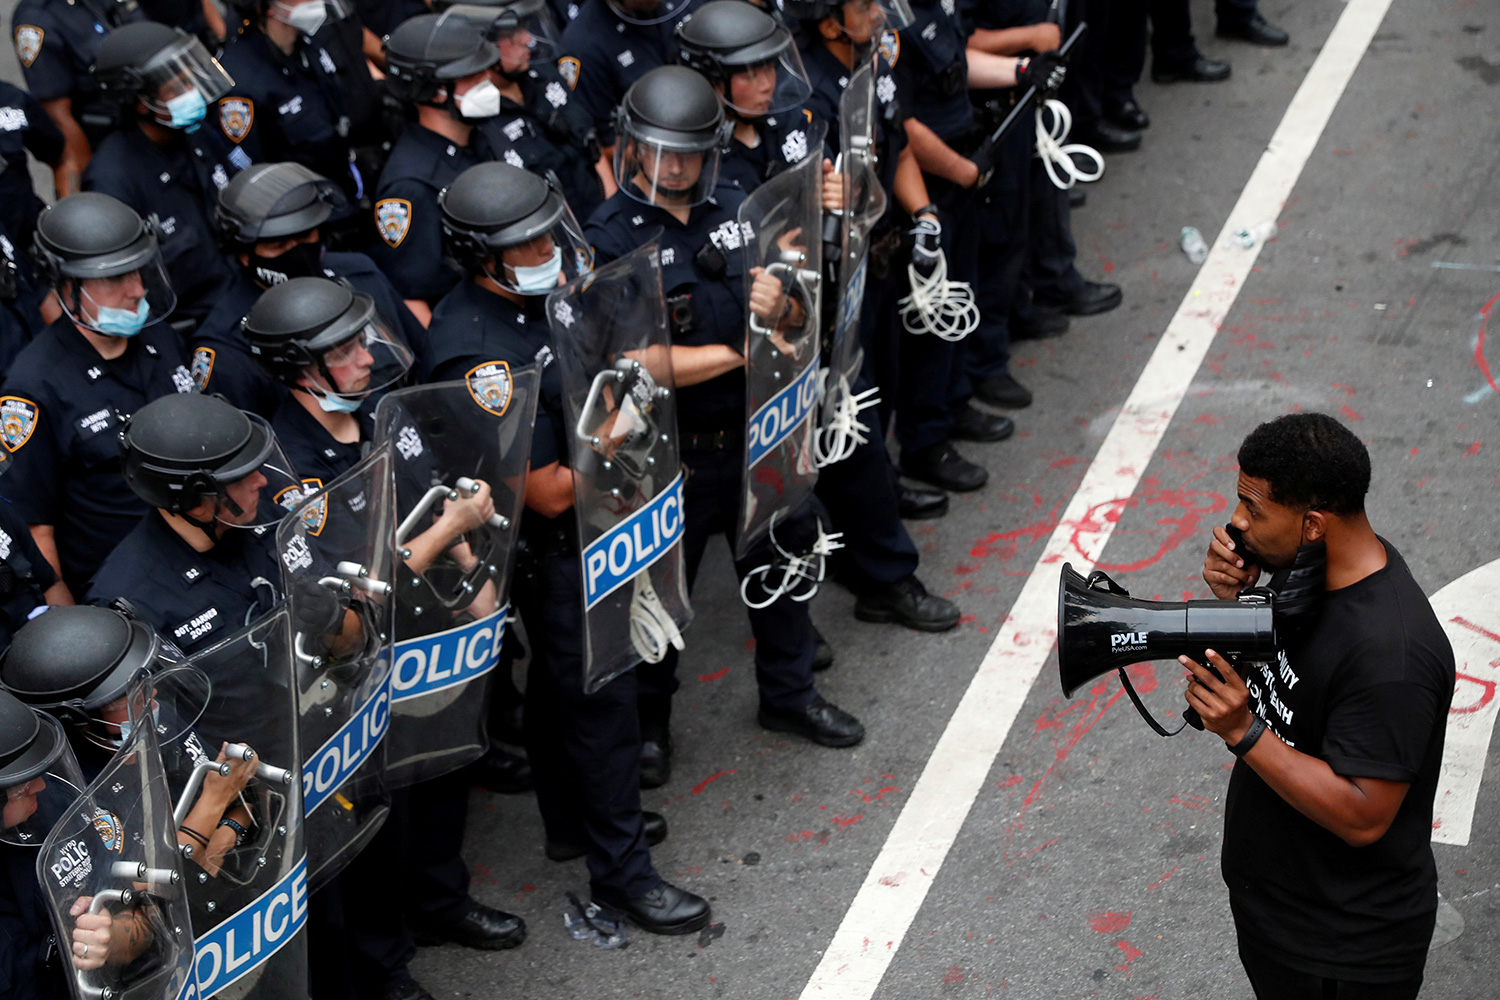 The photo shows a single protester with a bullhorn facing down a large crowd of officers.